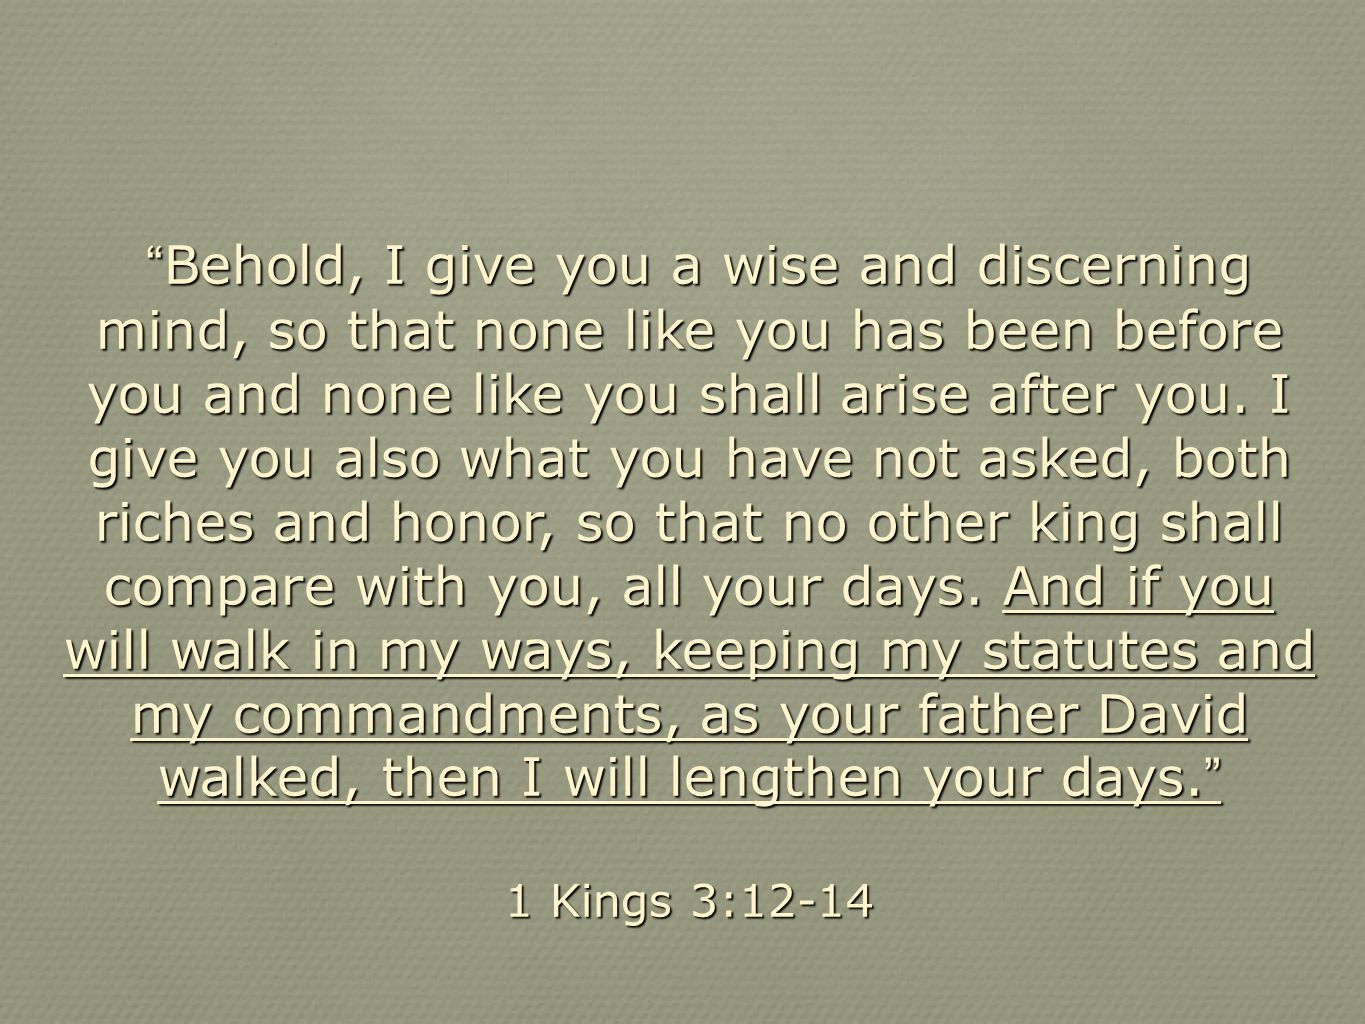 Behold, I give you a wise and discerning mind, so that none like you has been before you and none like you shall arise after you. I give you also what you have not asked, both riches and honor, so that no other king shall compare with you, all your days. And if you will walk in my ways, keeping my statutes and my commandments, as your father David walked, then I will lengthen your days.